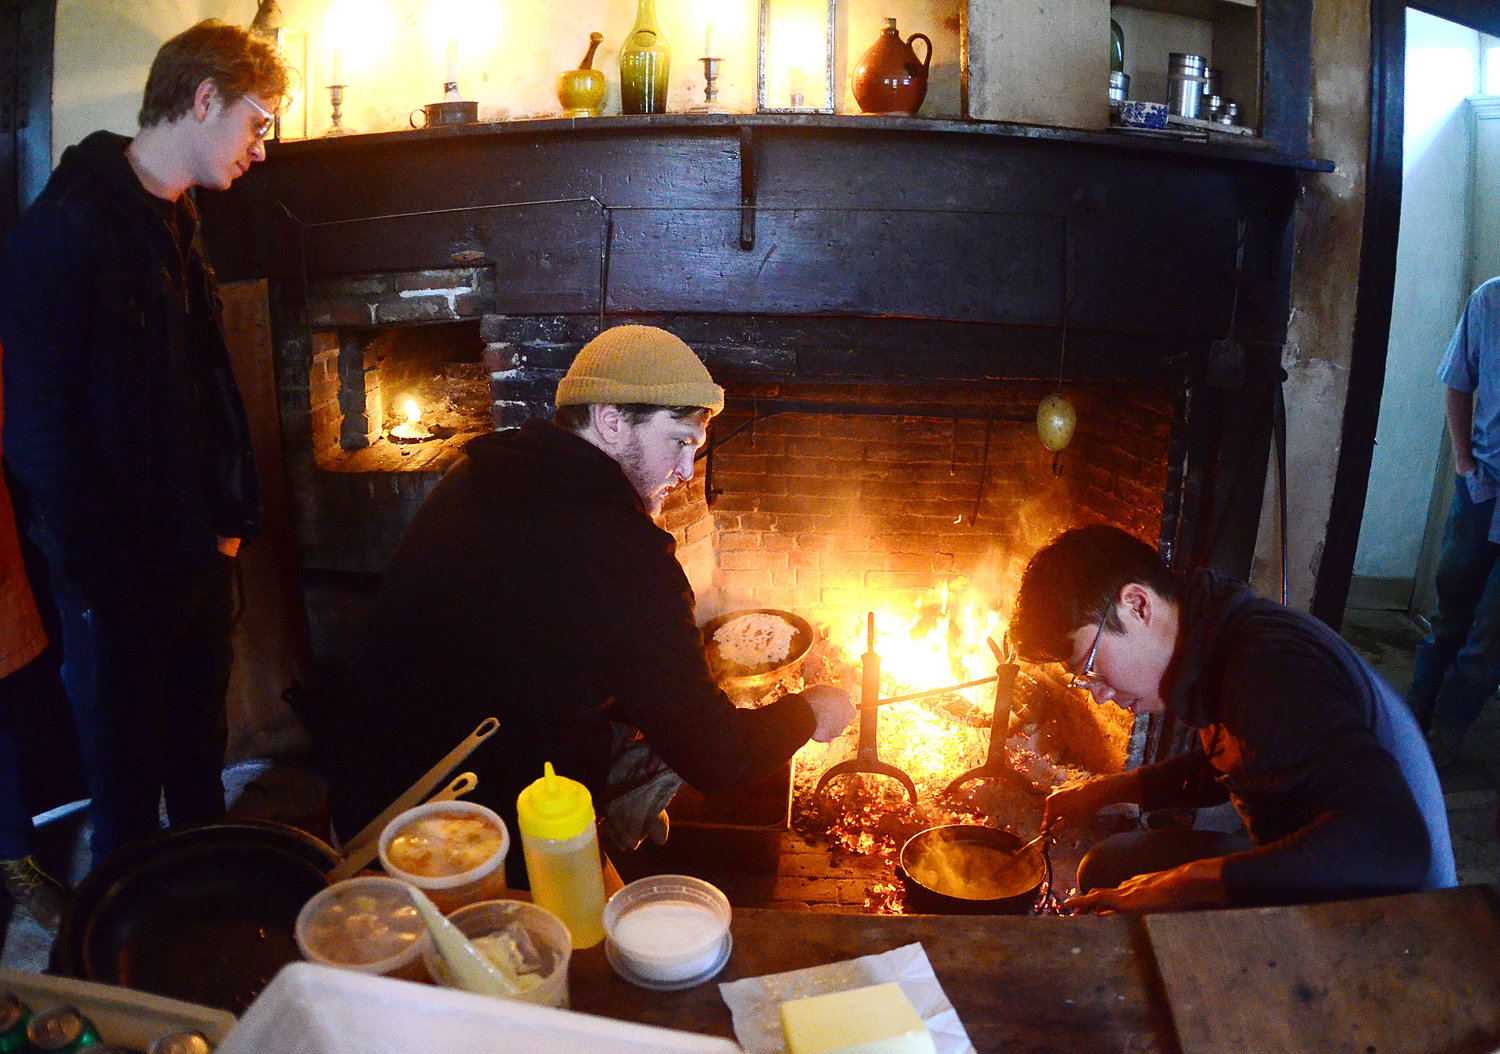 Restaurant owner Ben Sukle (middle) and John Ho (right) cook a meal on an historic open hearth for his Birch and Oberlin employees at Coggeshall Farm on Tuesday.